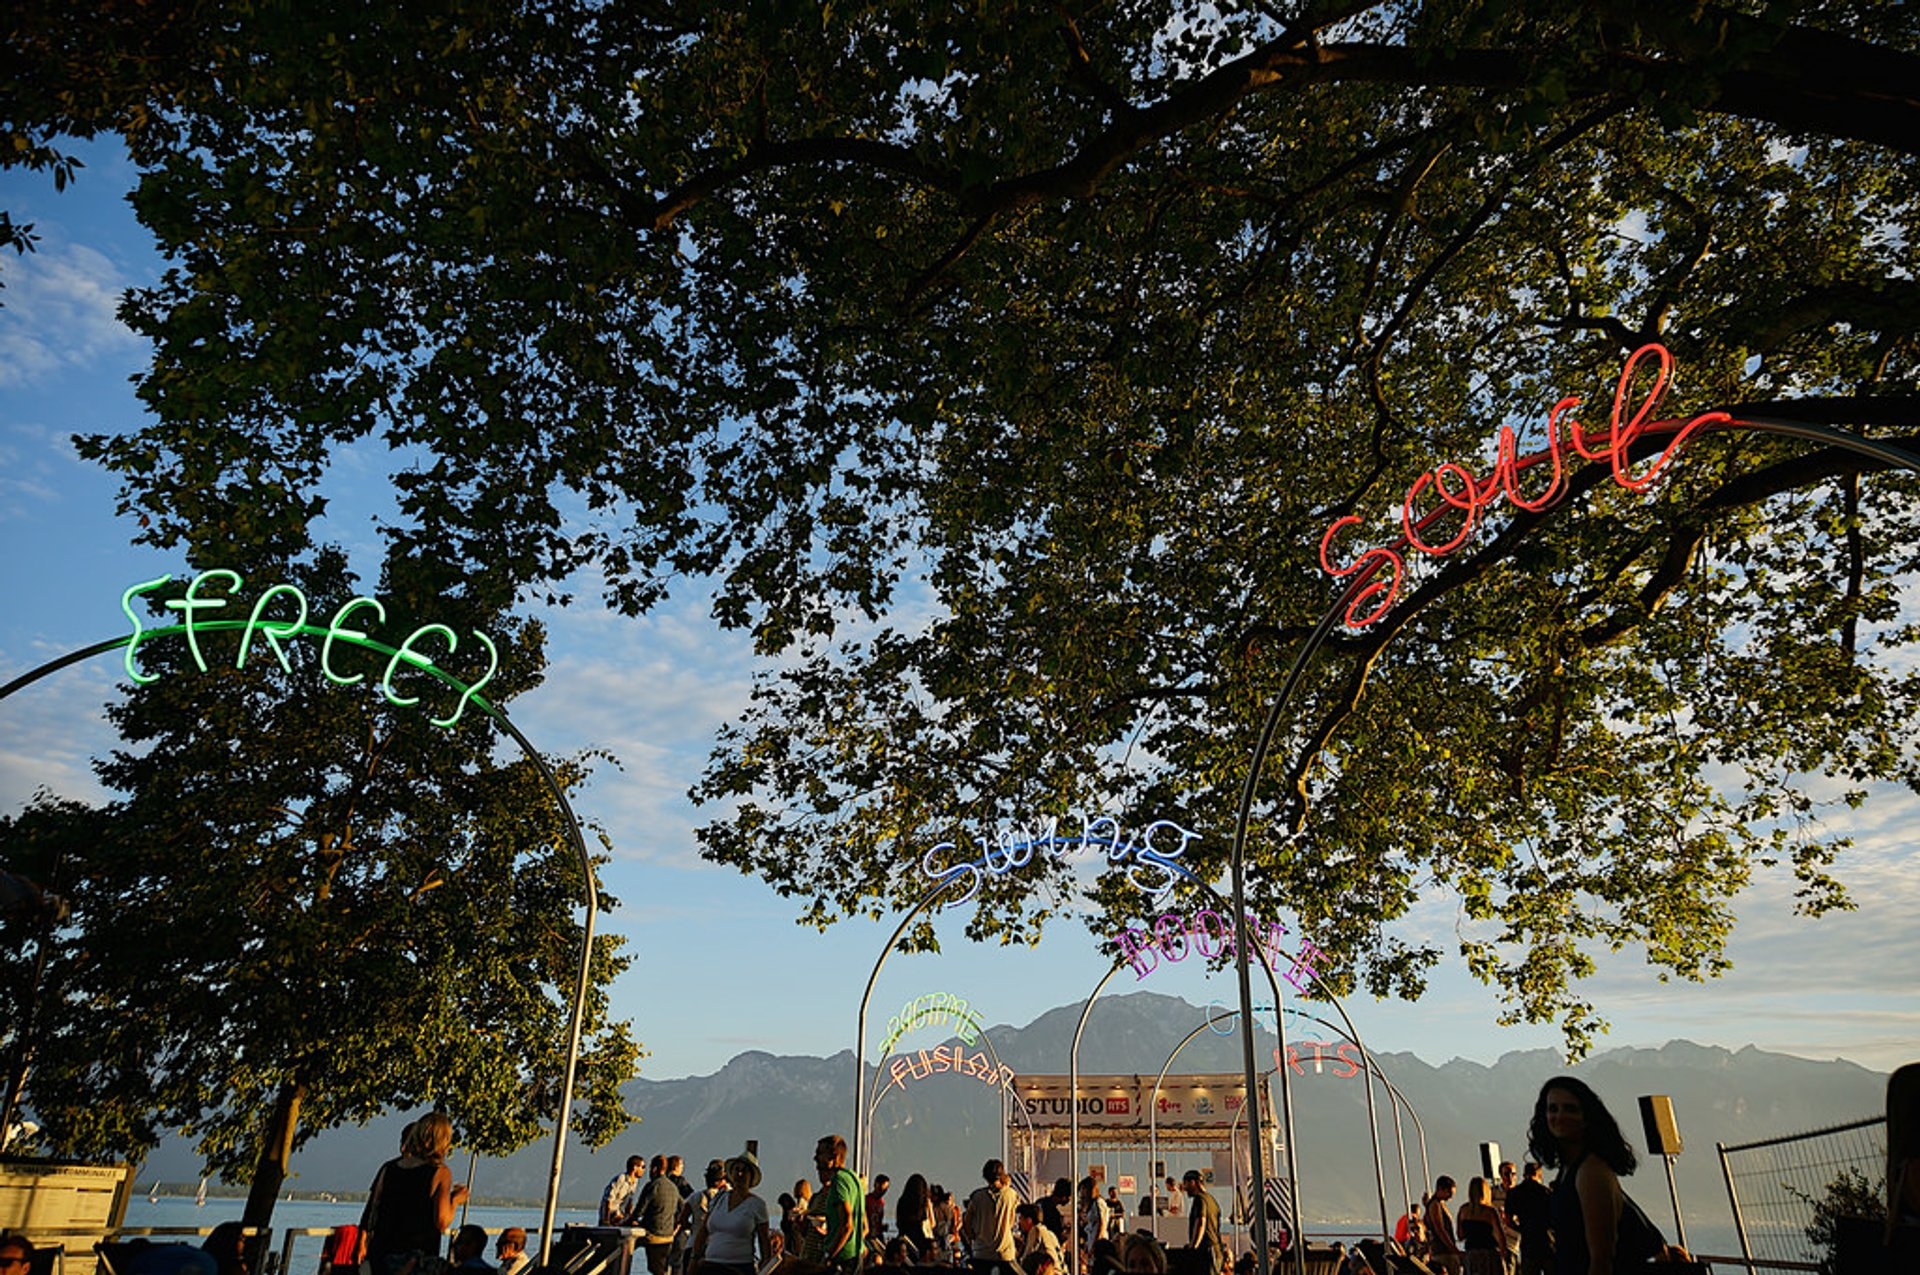 Montreux Jazz Festival in Switzerland - Best Season 2019